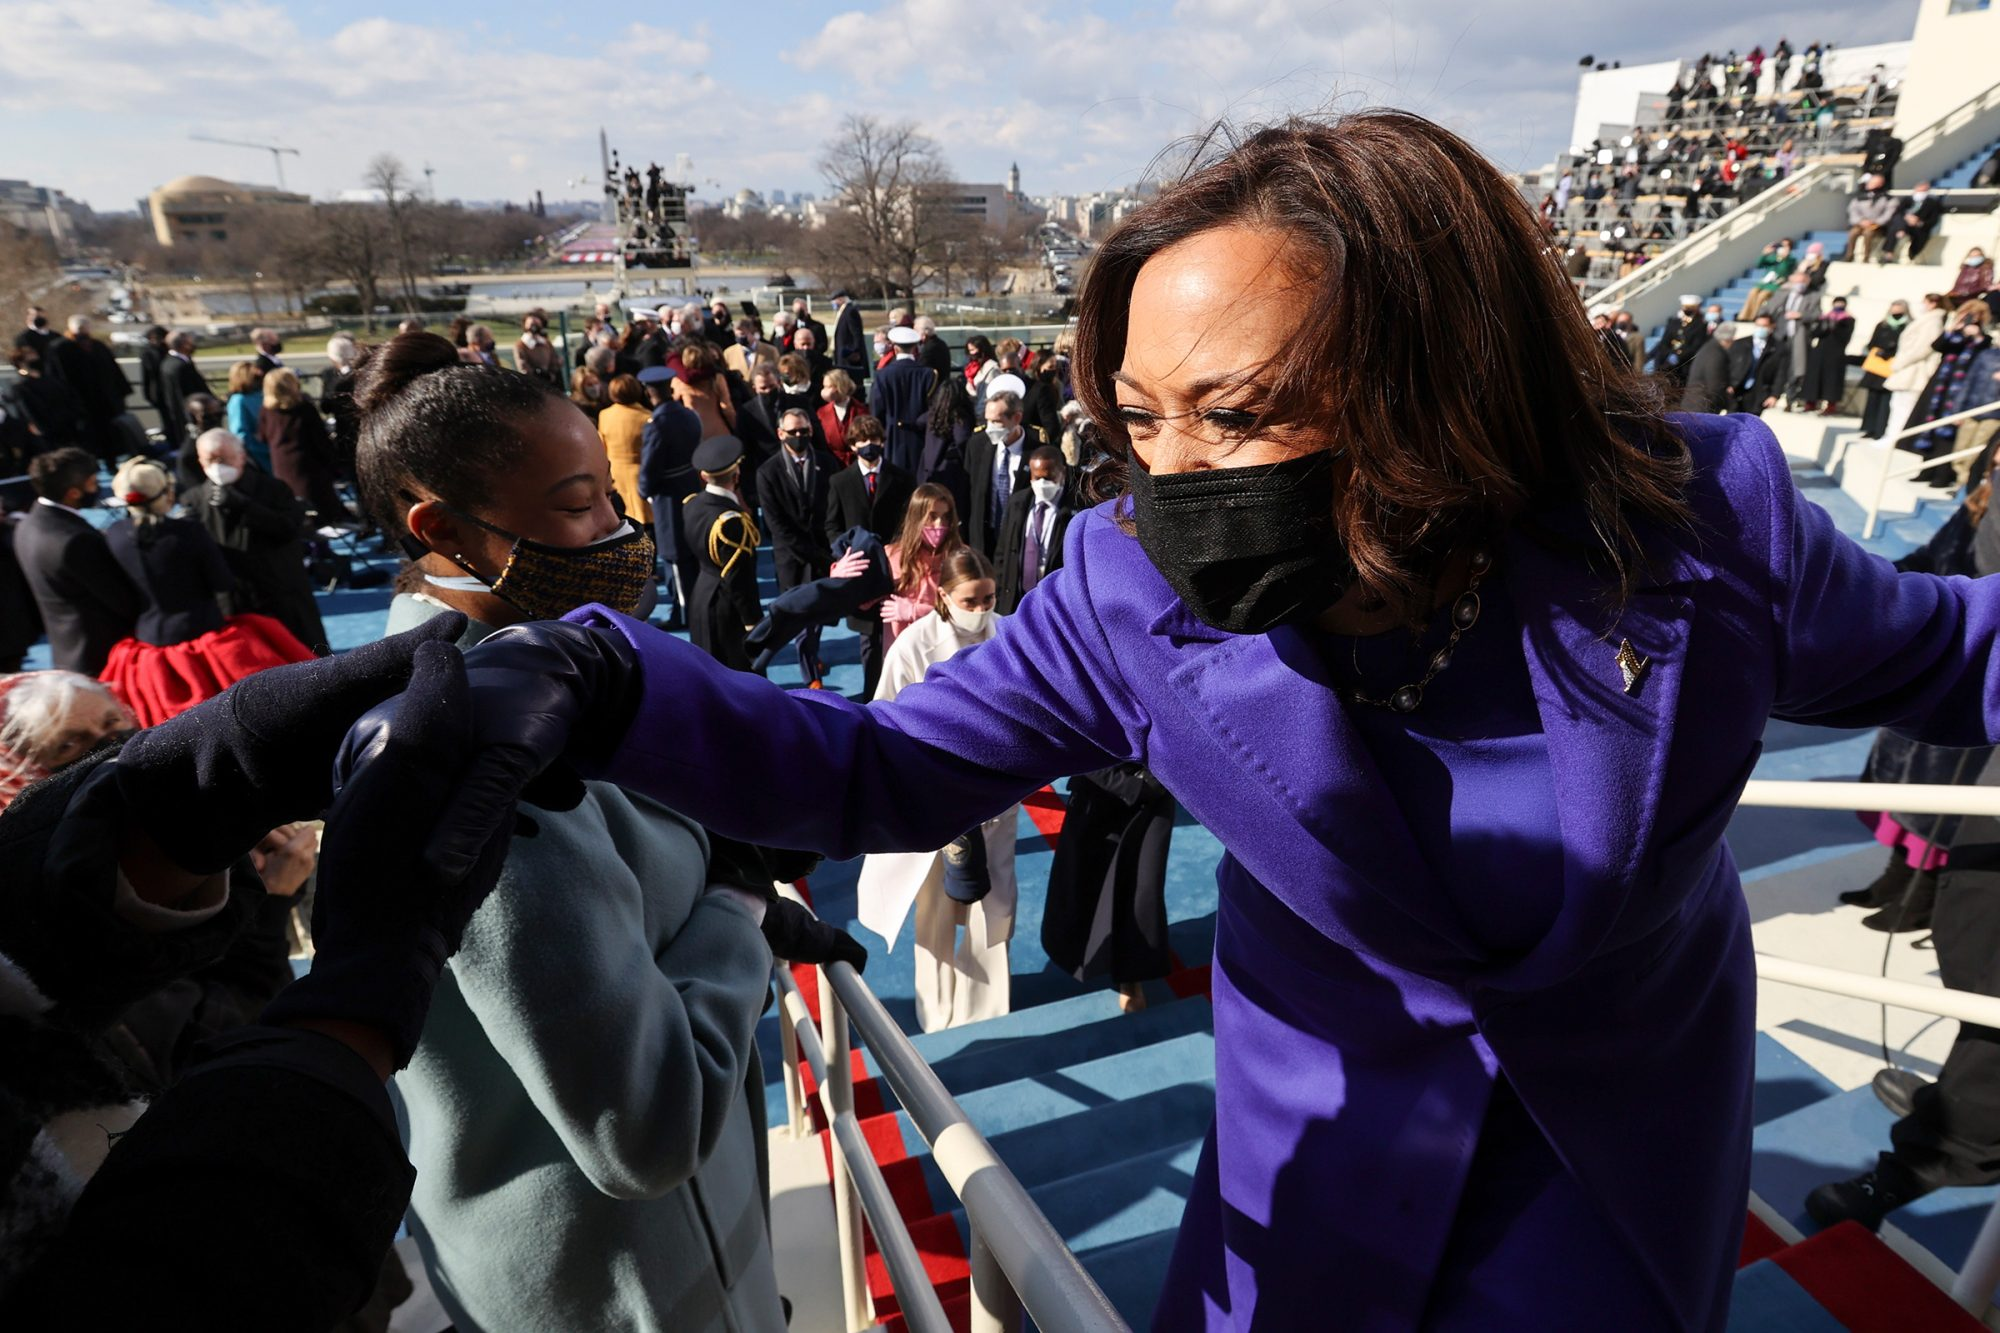 U.S. Vice President Kamala Harris leaves after she was inaugurated along with President Joe Biden on the West Front of the U.S. Capitol on January 20, 2021 in Washington, DC